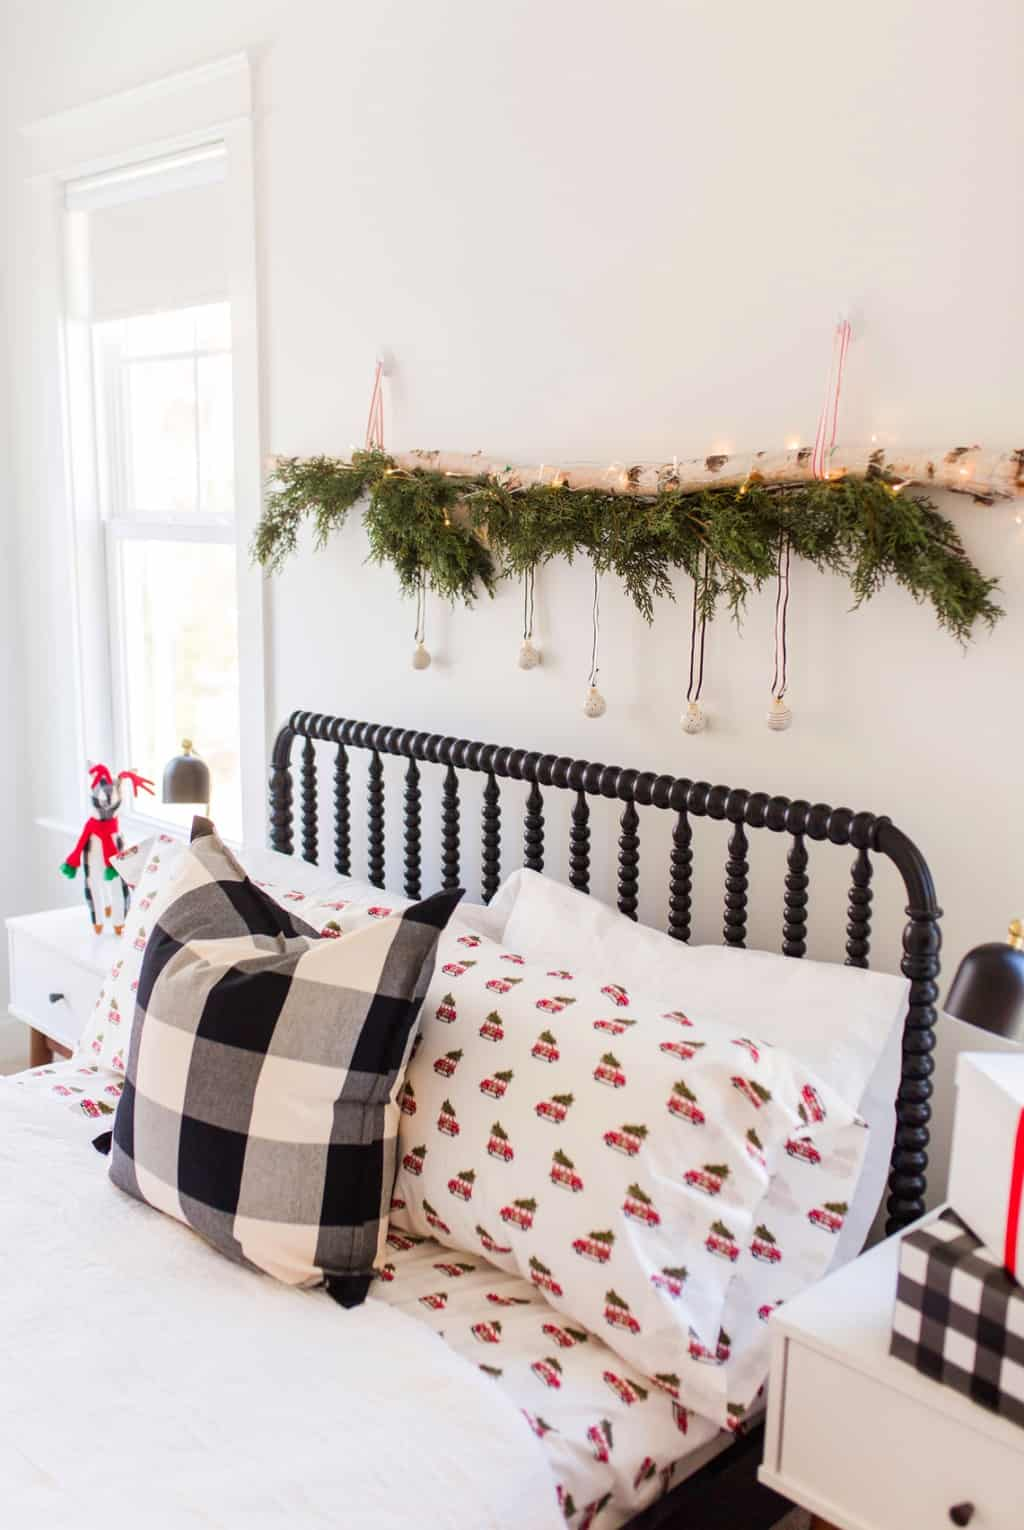 birch log wall hanging for christmas bedroom decor